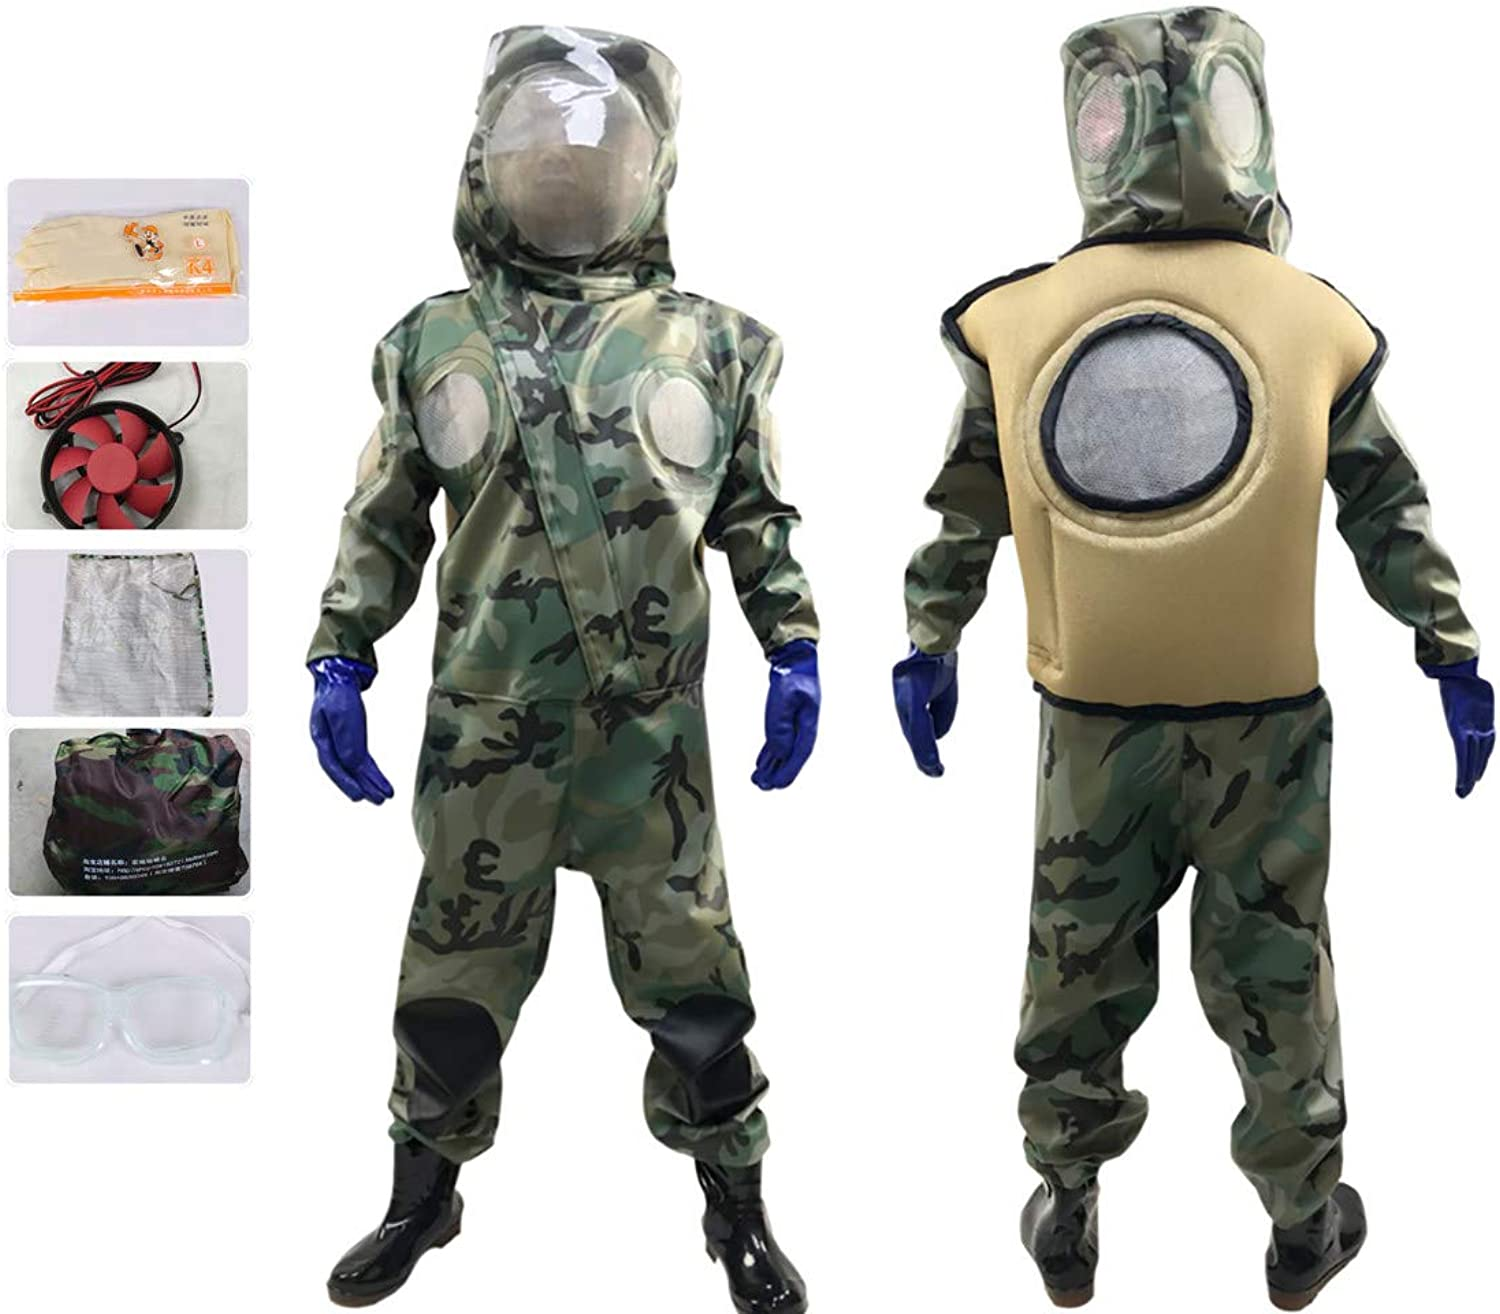 APENCHREN Beekeeping Suit Bee Predective Clothing, with Veil, Ventilation Comfort with Hat, Work clothes  for Beginner and Commercial Beekeepers,XLshoesSize45